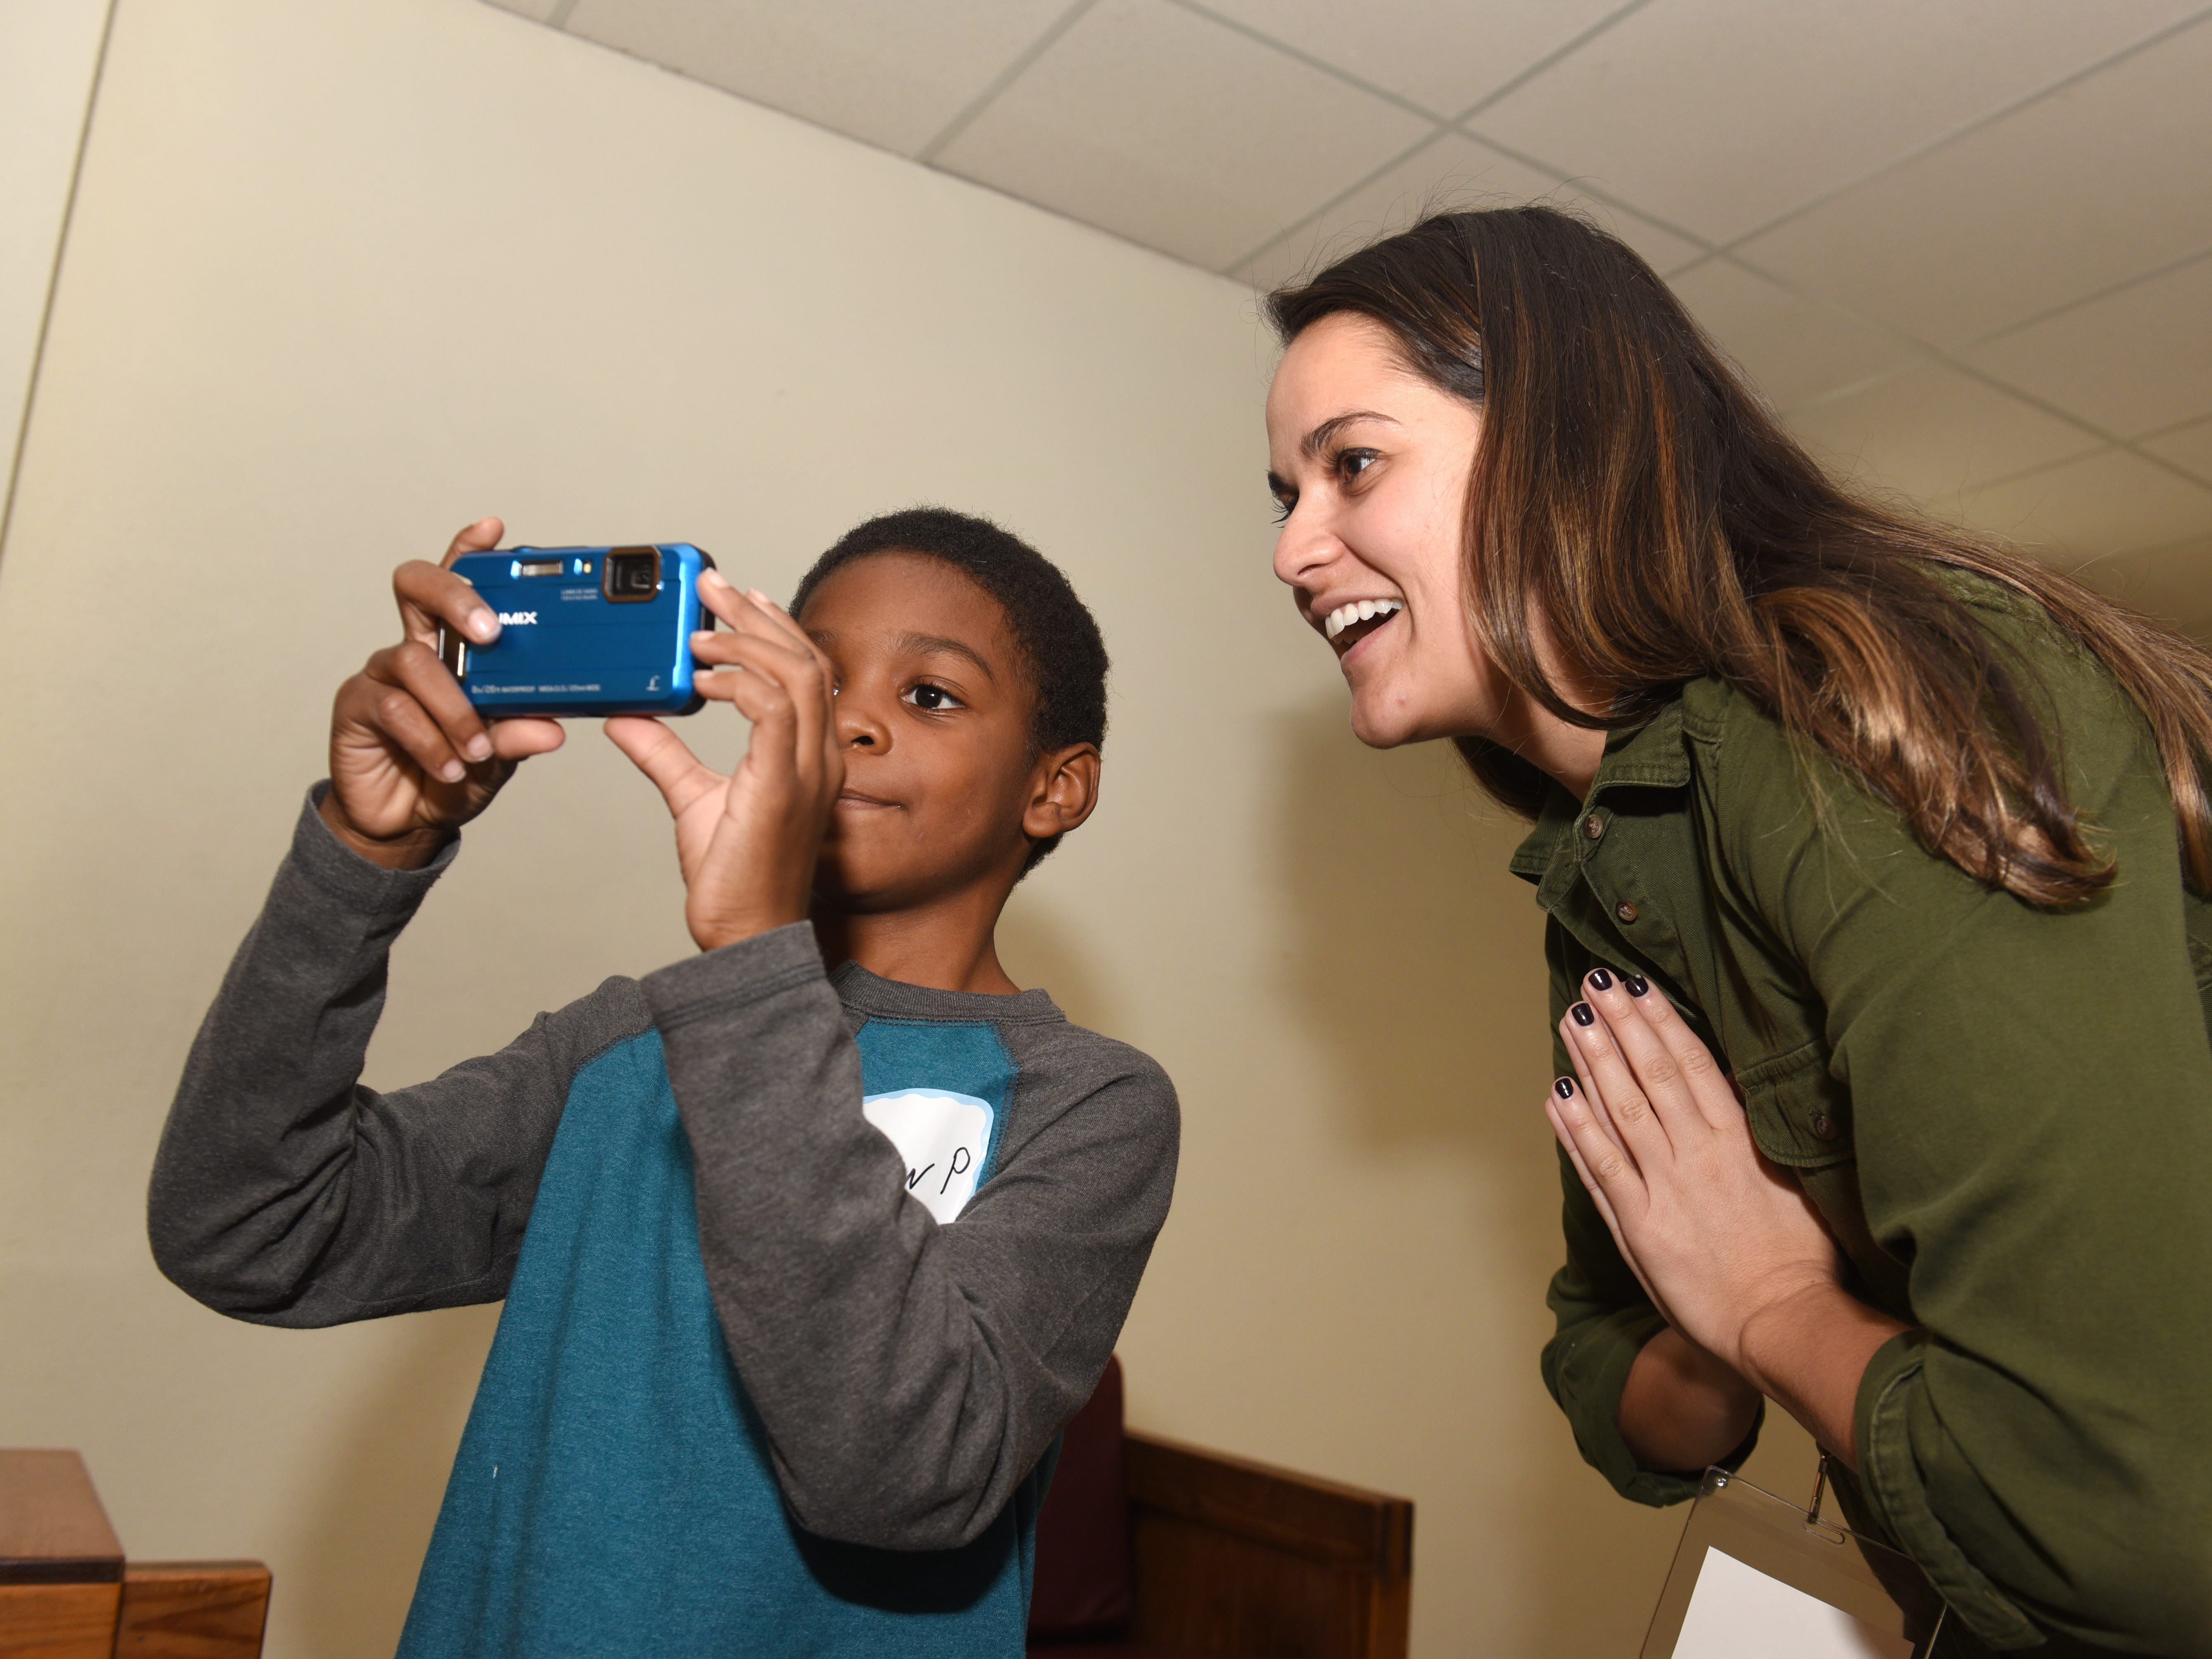 Community mentor Alexis Ahee (right) smiles as she assist Andrew P. as they take pictures in Detroit on October 20, 2018.